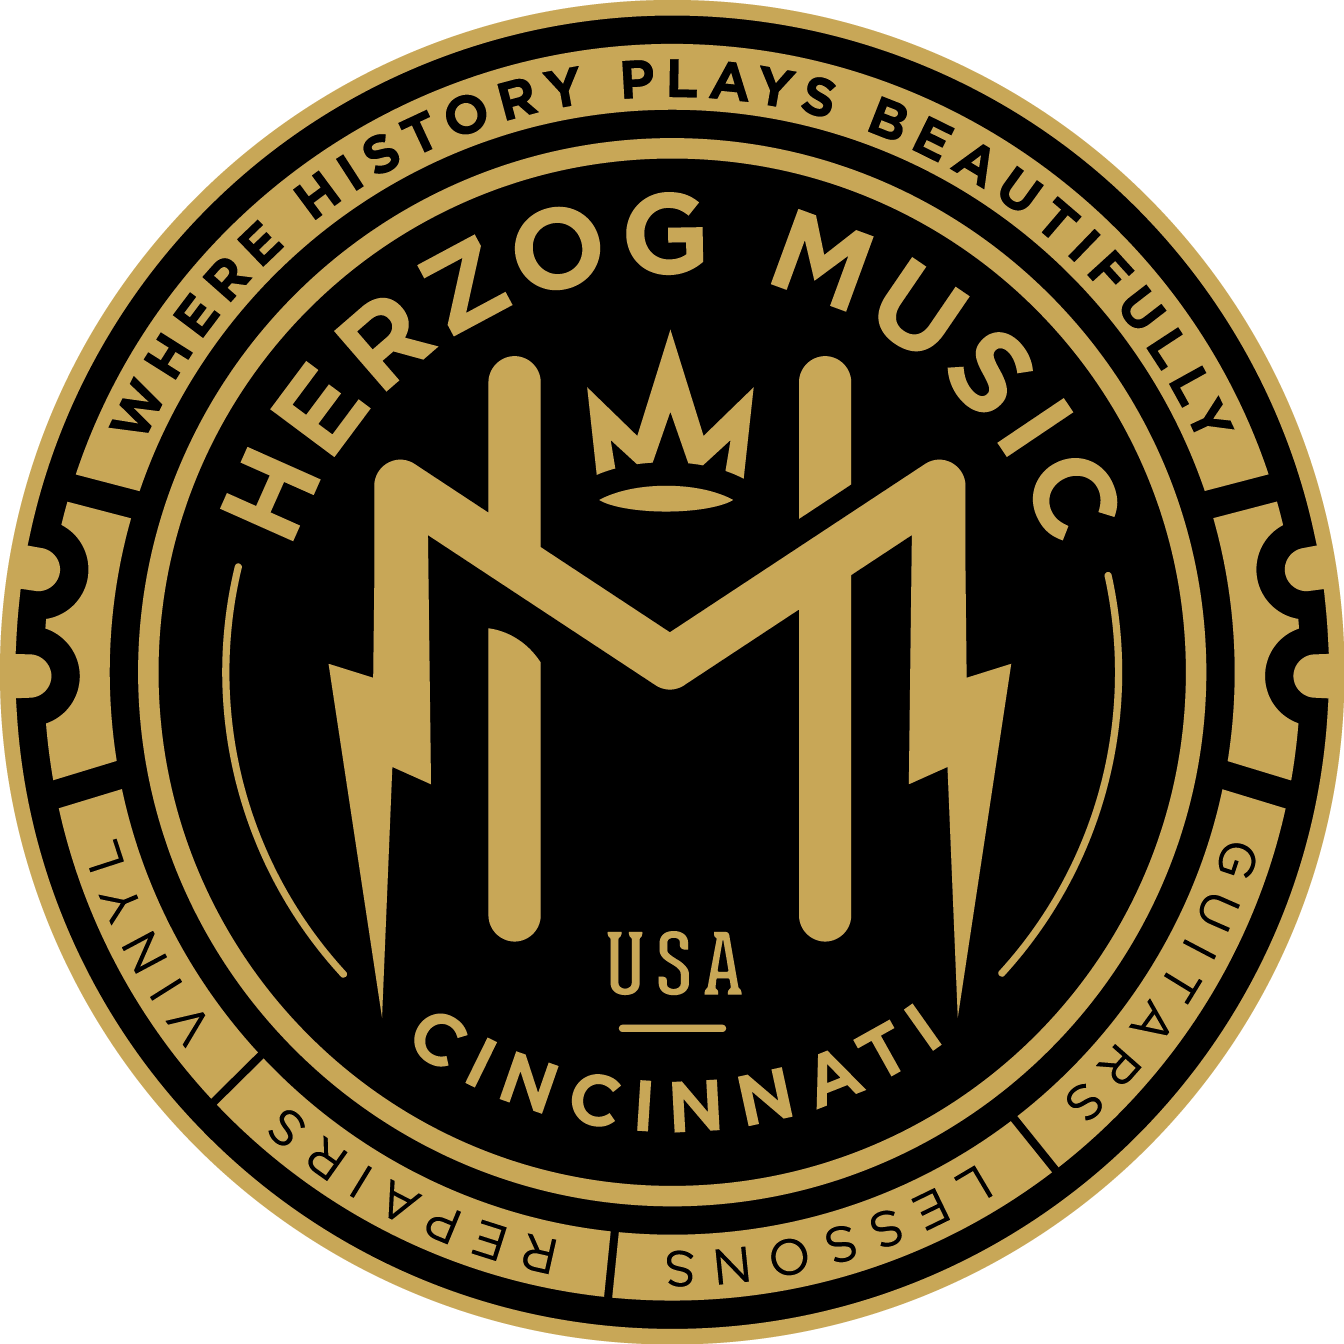 Herzog Music - Lessons, Outreach, Records and Gear